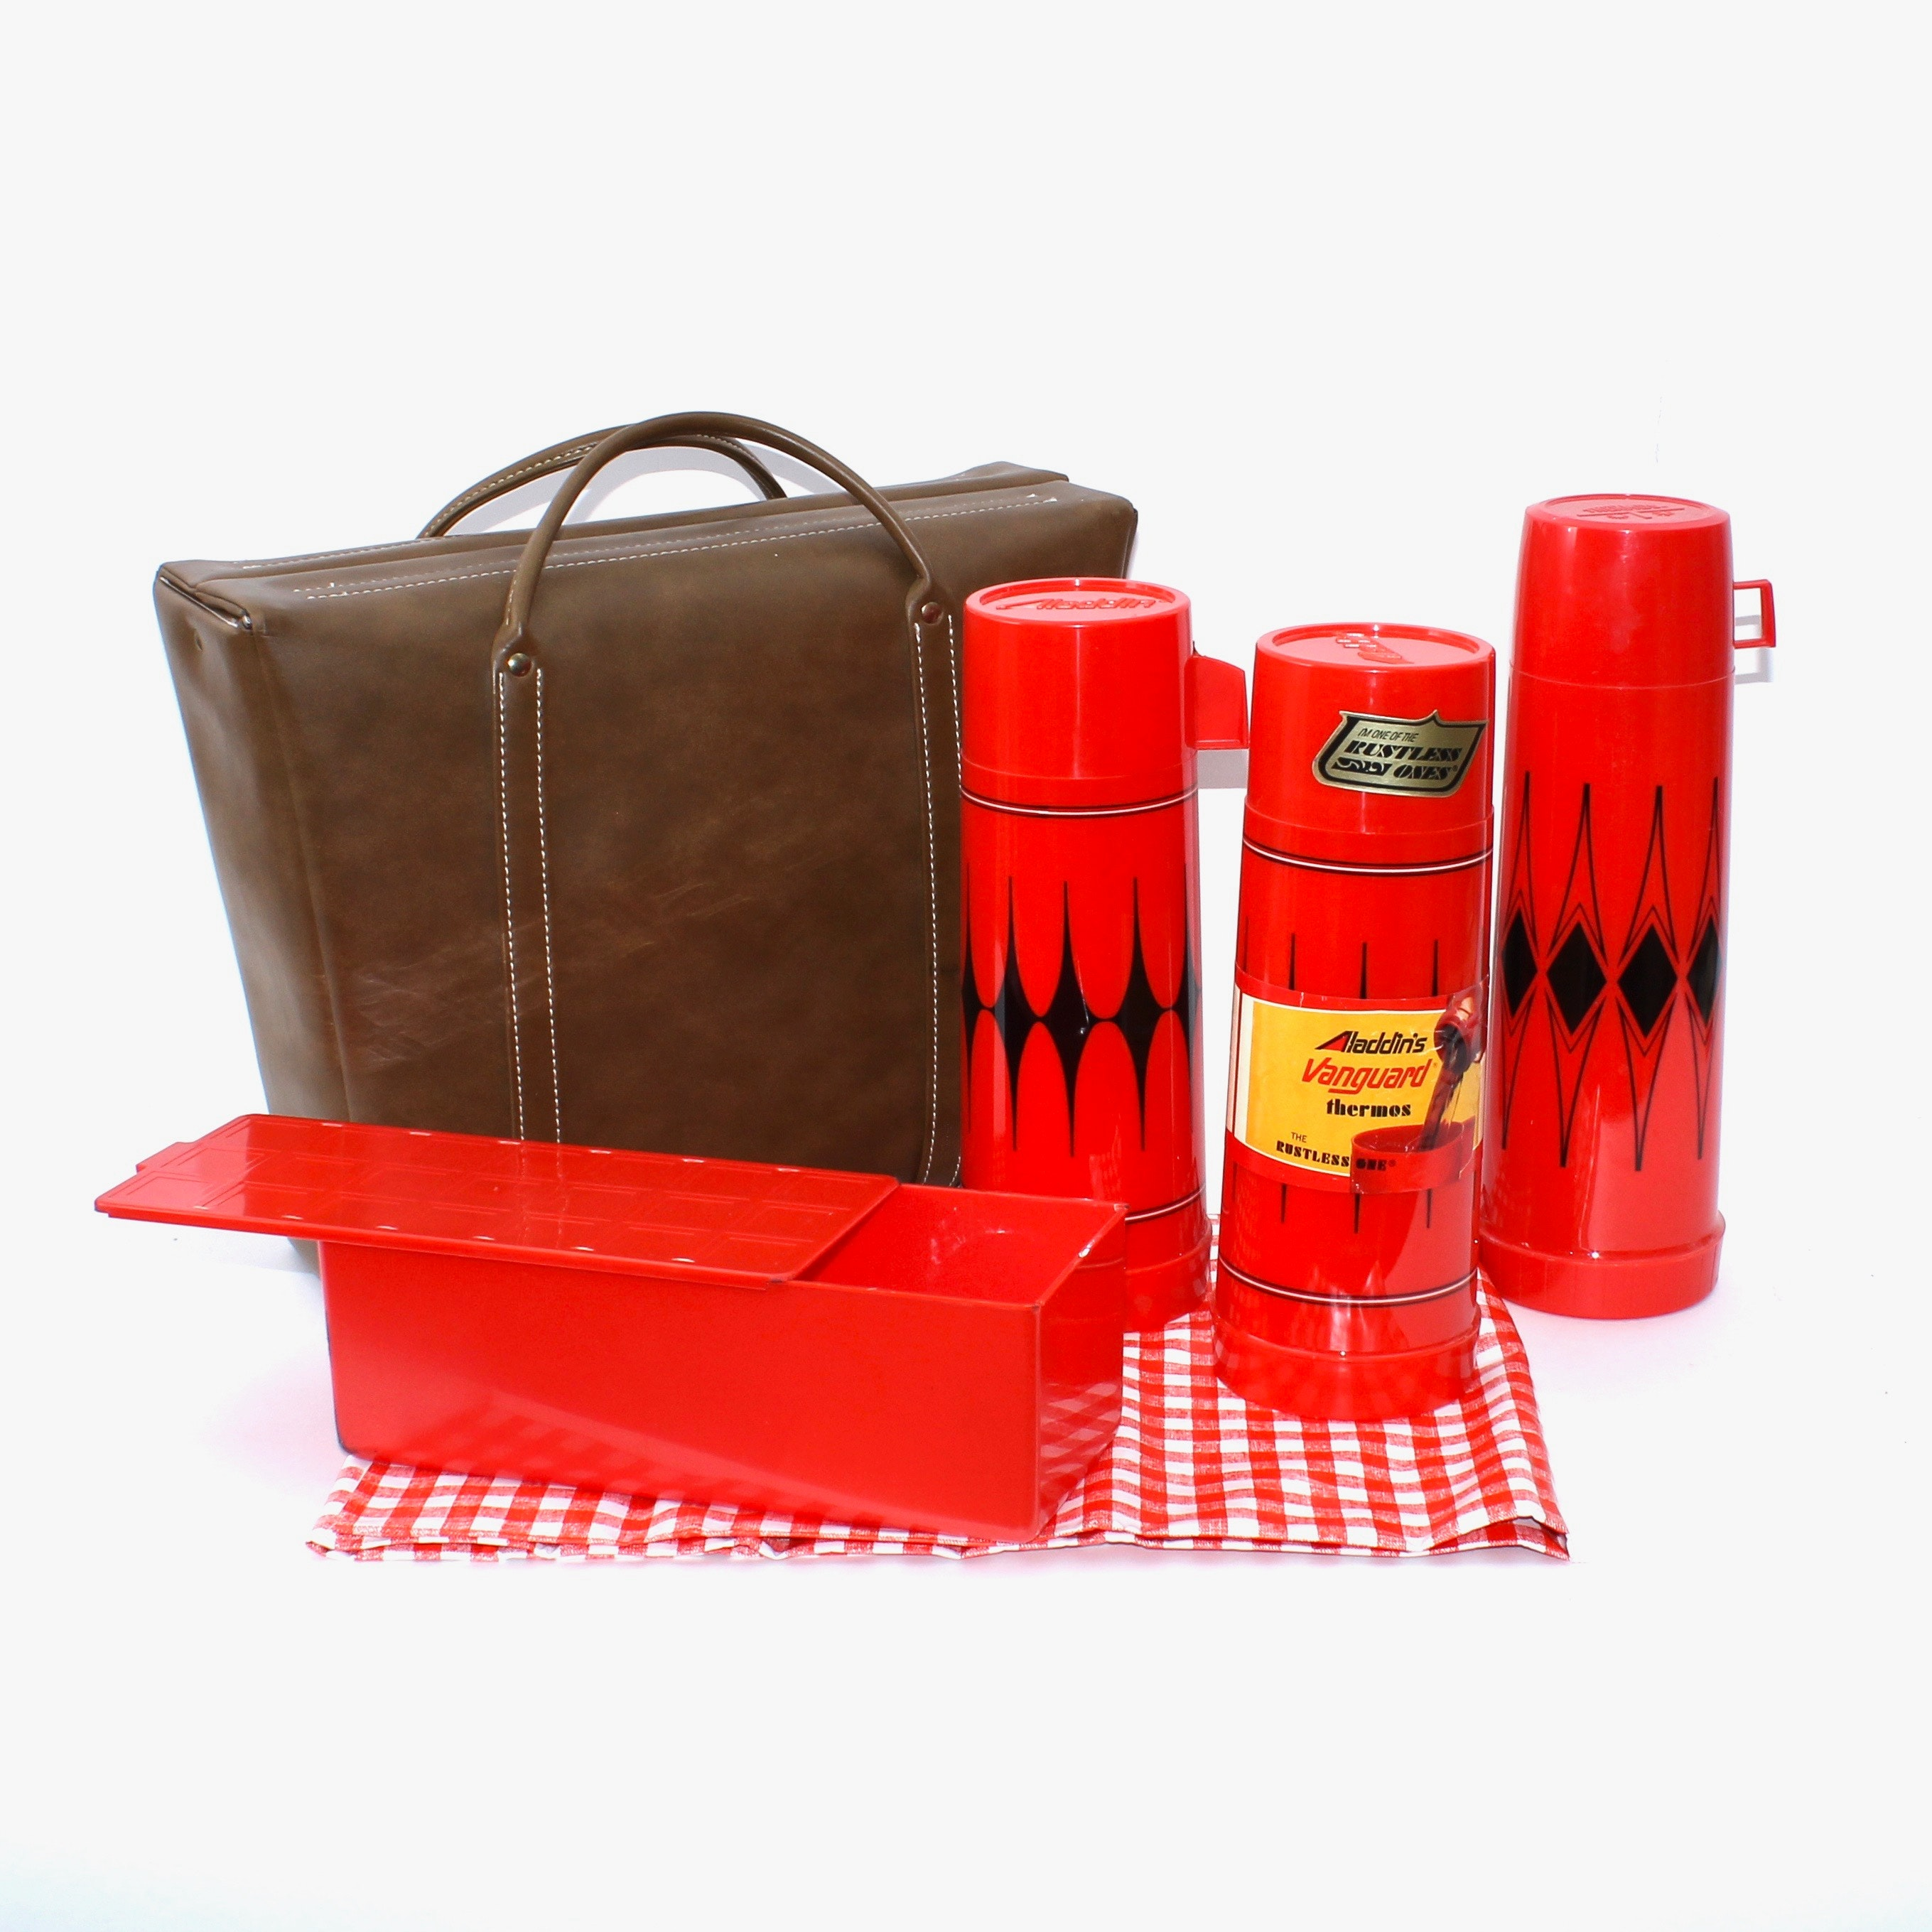 Vintage Aladdin's Vanguard Picnic and Thermos Set